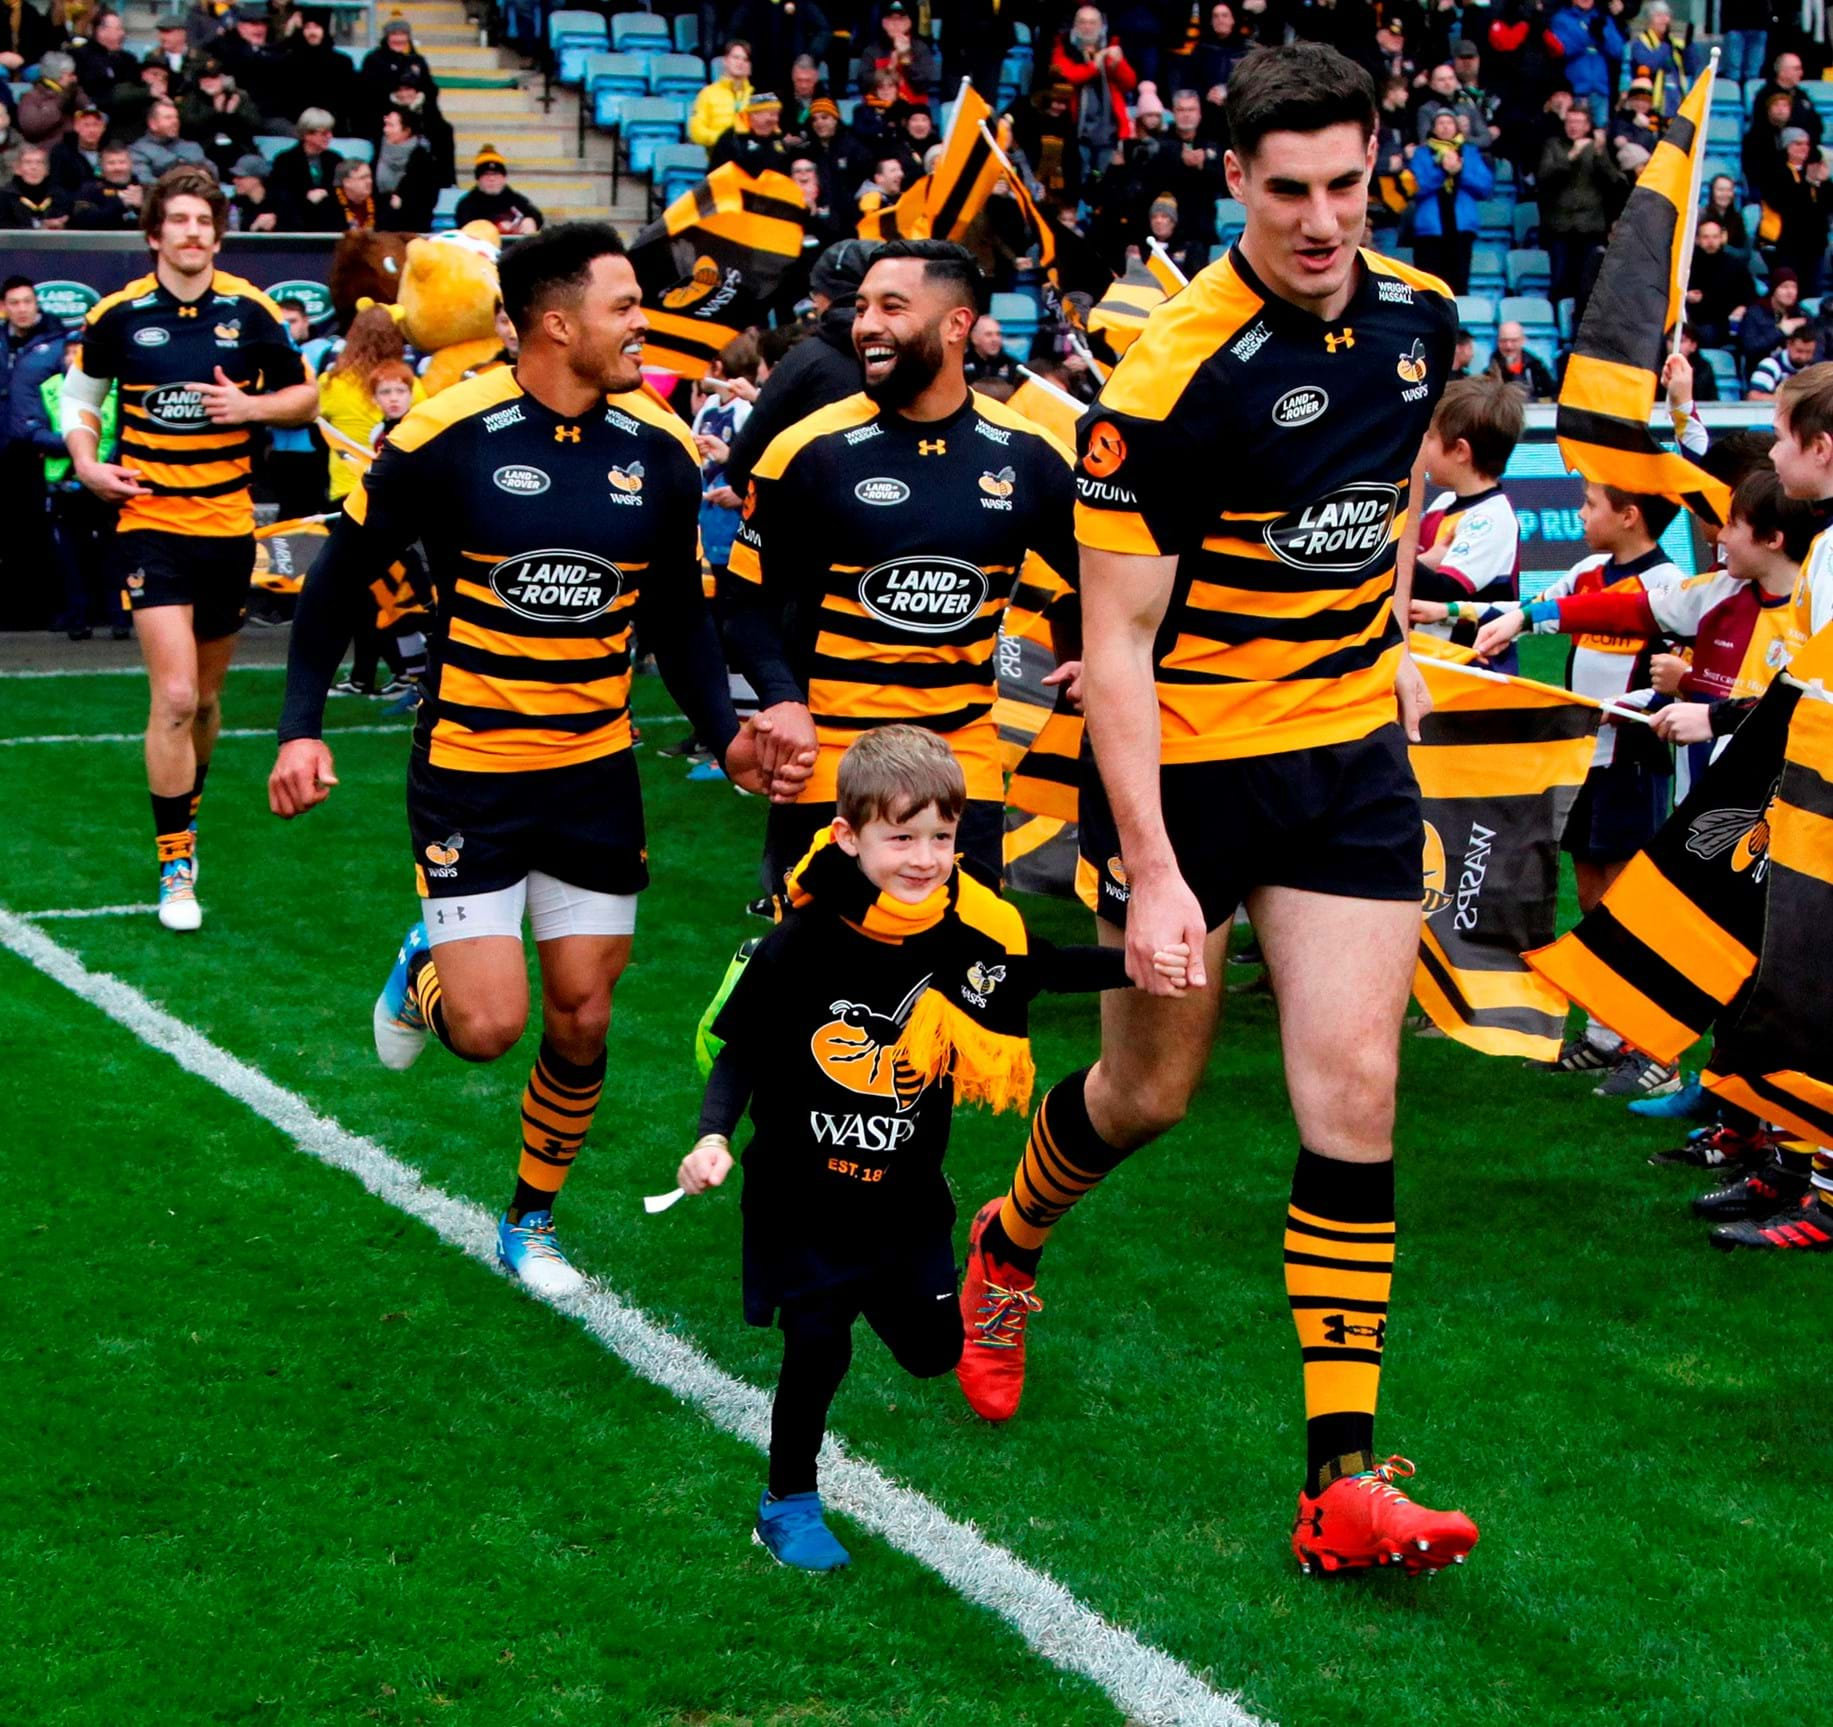 d7aa14d49e7 Mascot Competition - Wasps v Sale Sharks